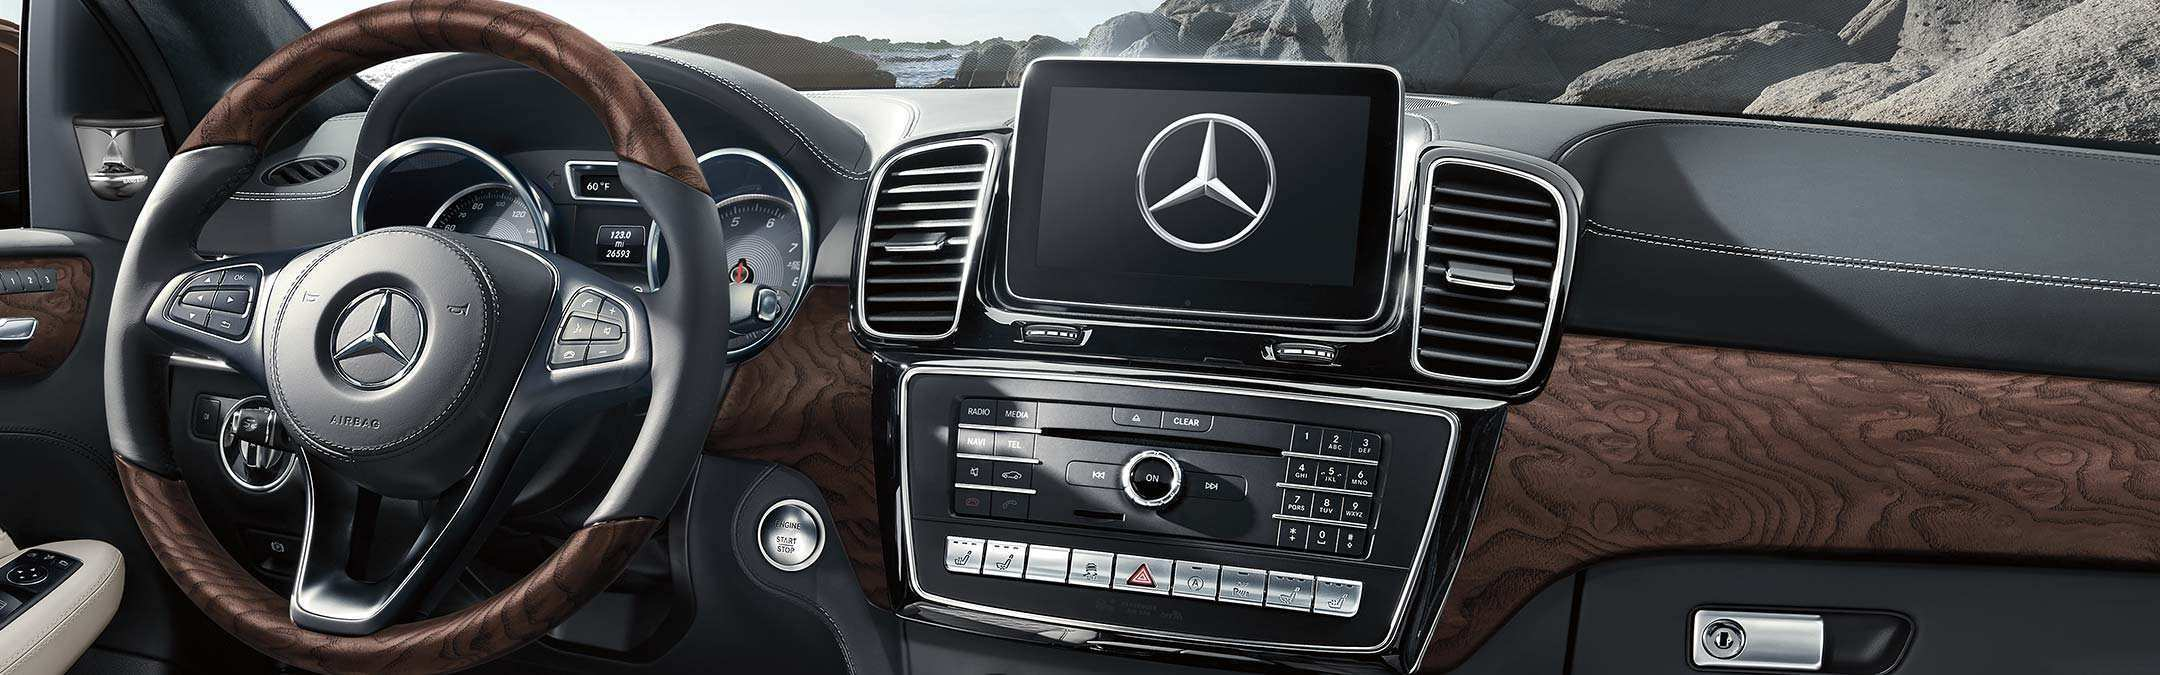 89 New Mercedes 2019 Gls Redesign and Concept with Mercedes 2019 Gls